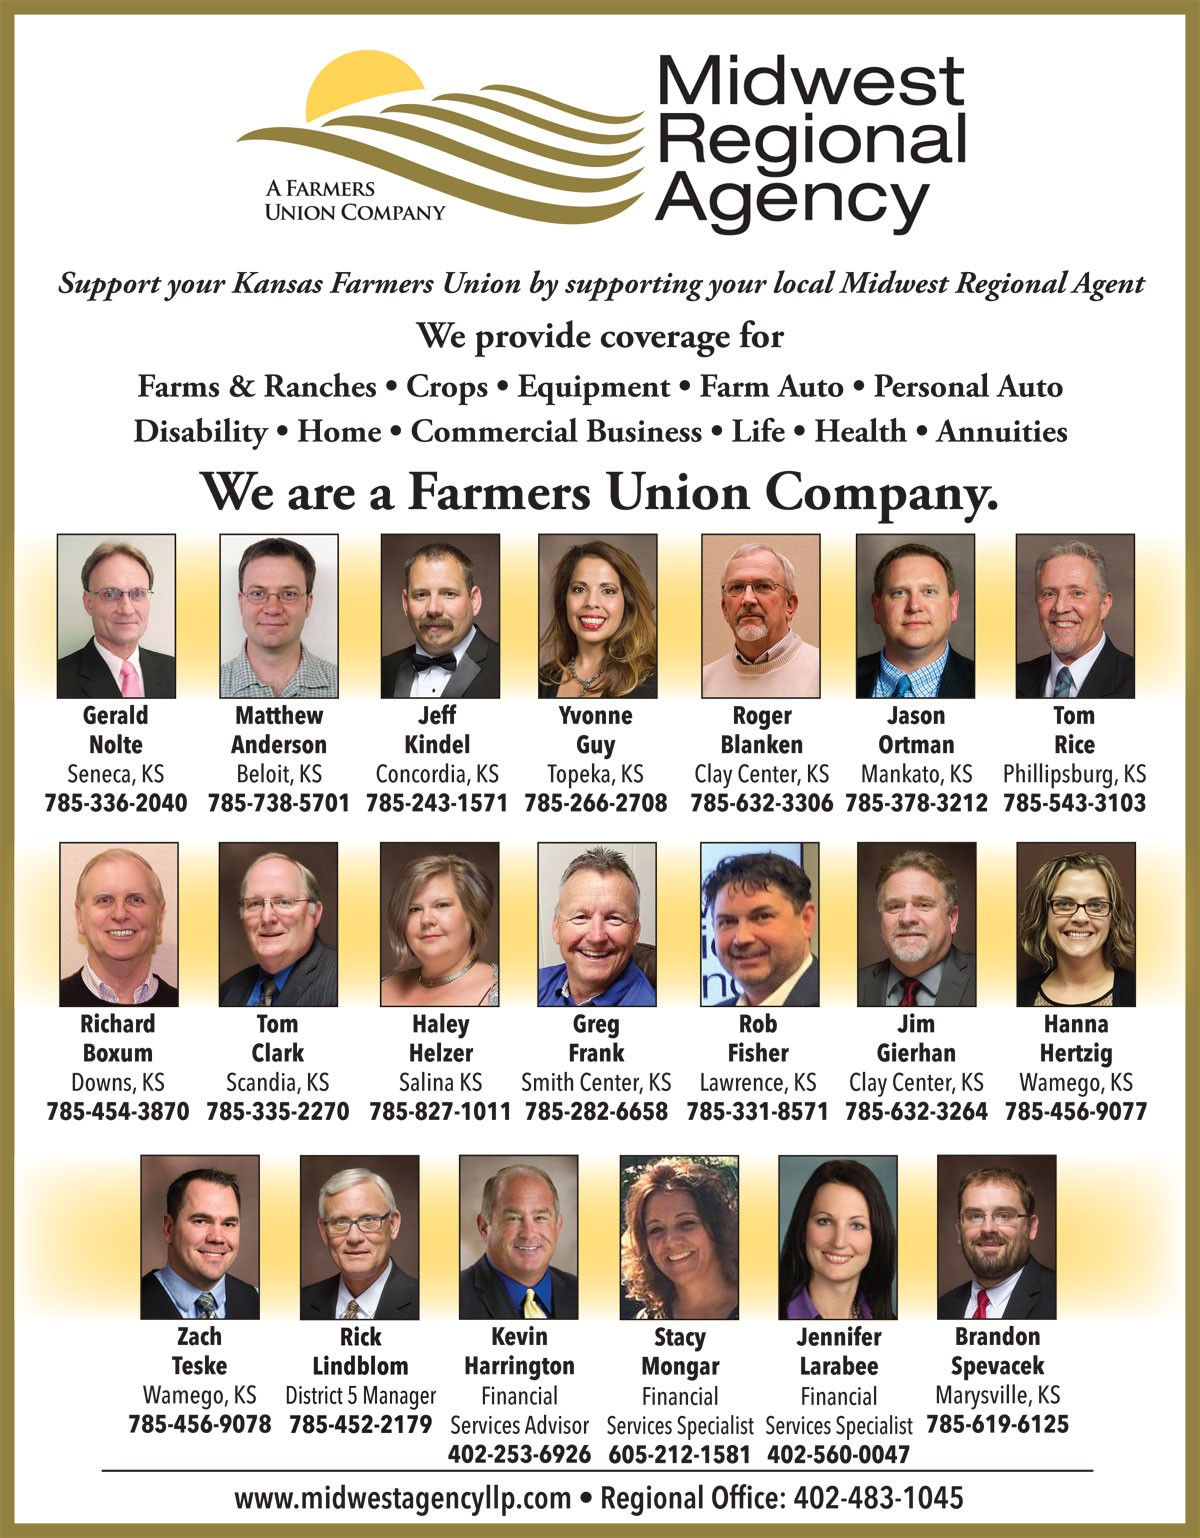 MIDWEST REGIONAL AGENCY AGENTS PAGE 2